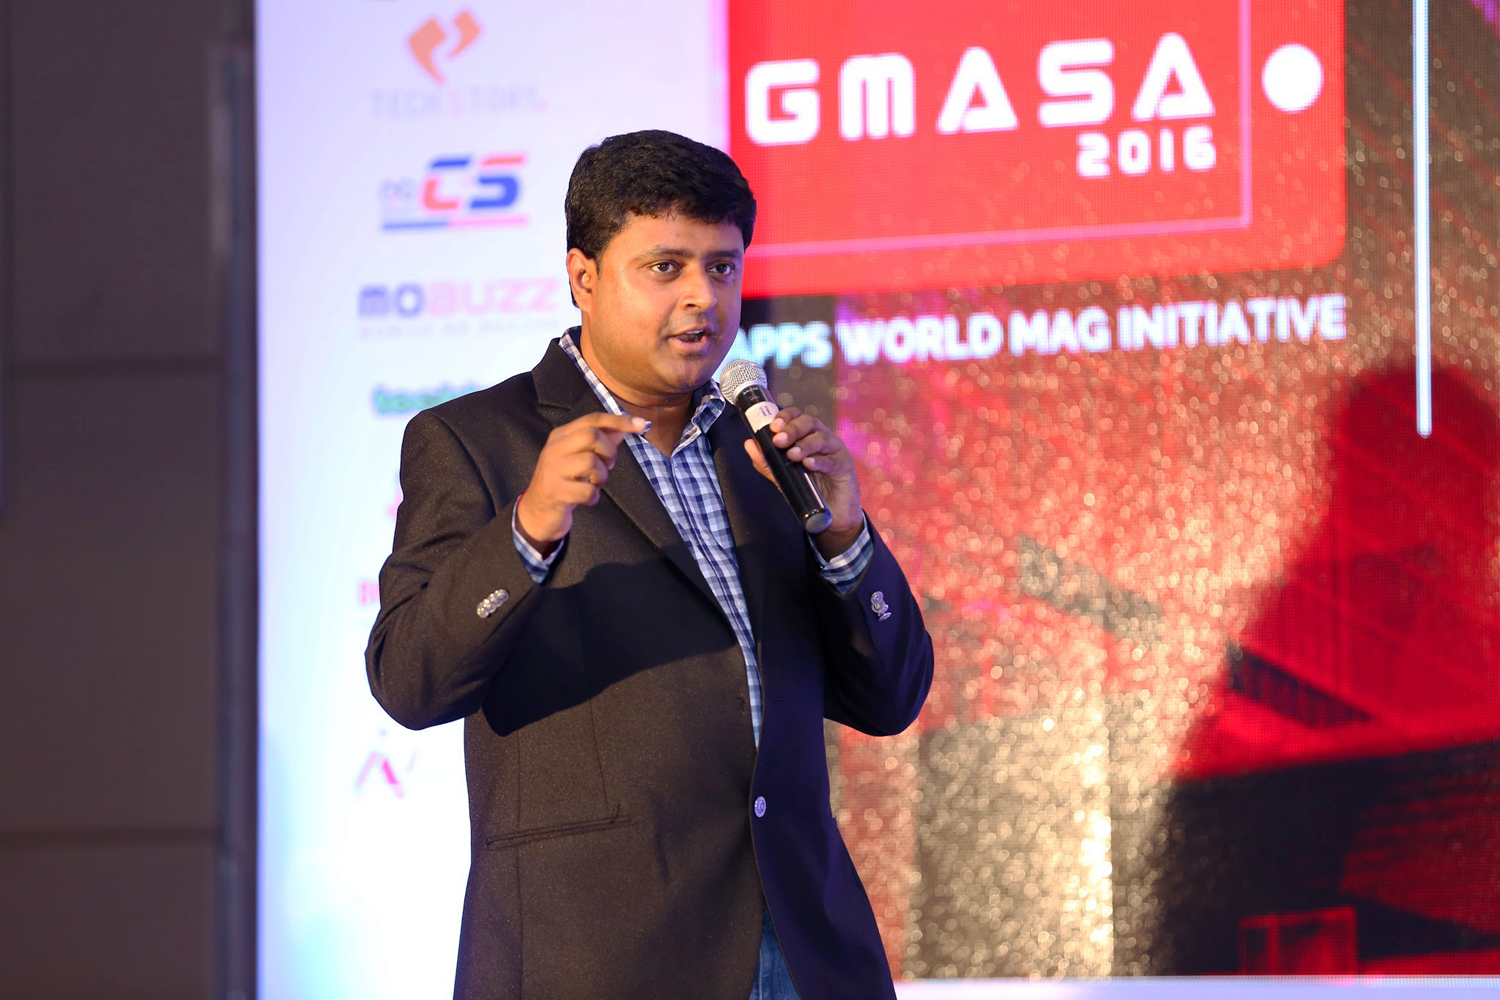 gmasa chairman interview